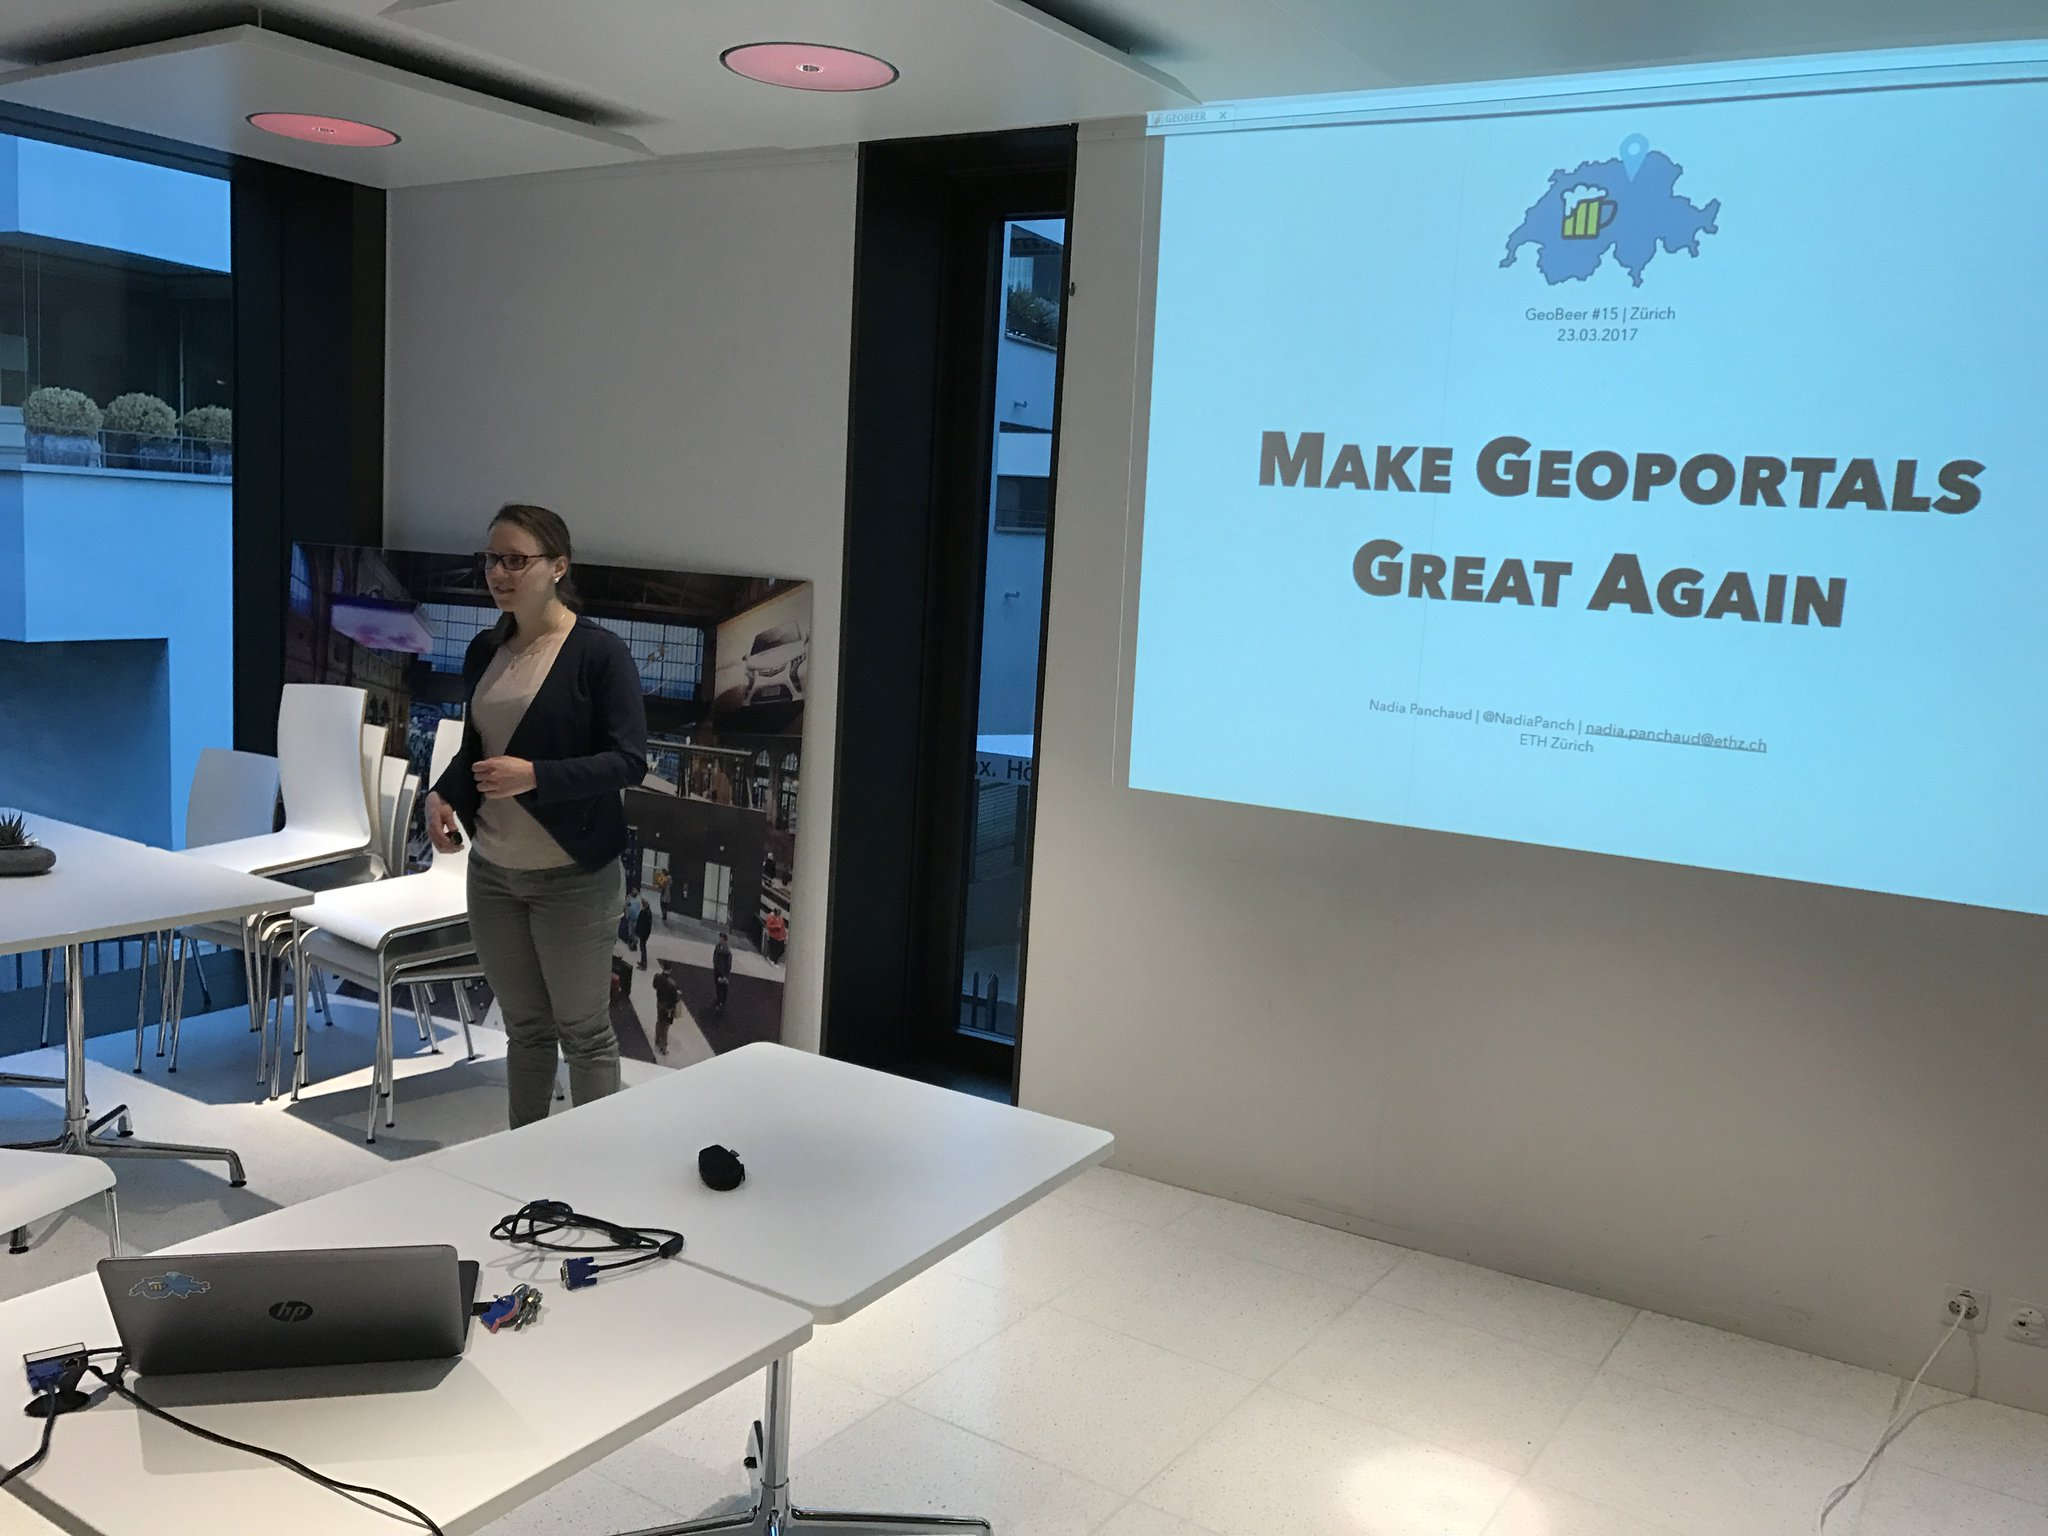 «Make Geoportals great again!» by @NadiaPanch #geobeerch https://t.co/M8ttoWAOCu